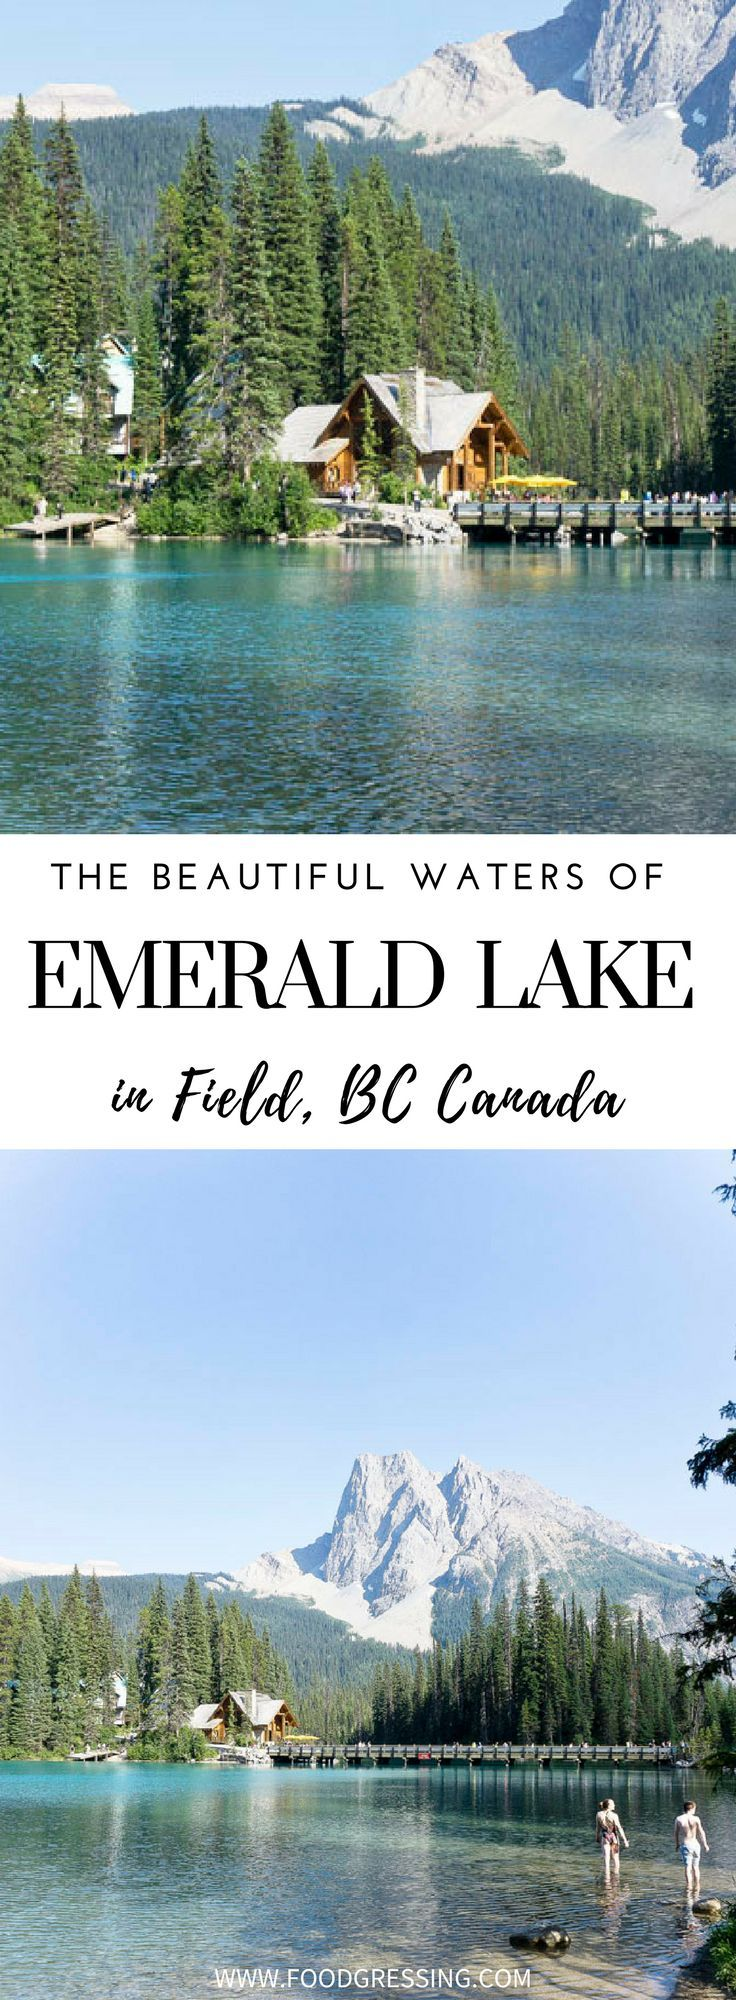 What you need to know before visiting Emerald Lake in Field BC.** #EmeraldLake | Emerald Lake Field BC | Emerald Lake Field BC Travel | Emerald Lake Field BC Things To Do | Emerald  Lake Field BC Vacation | Emerald Lake Field BC Weekend | What to do in Emerald Lake Field BC | Emerald Lake Field BC Attractions